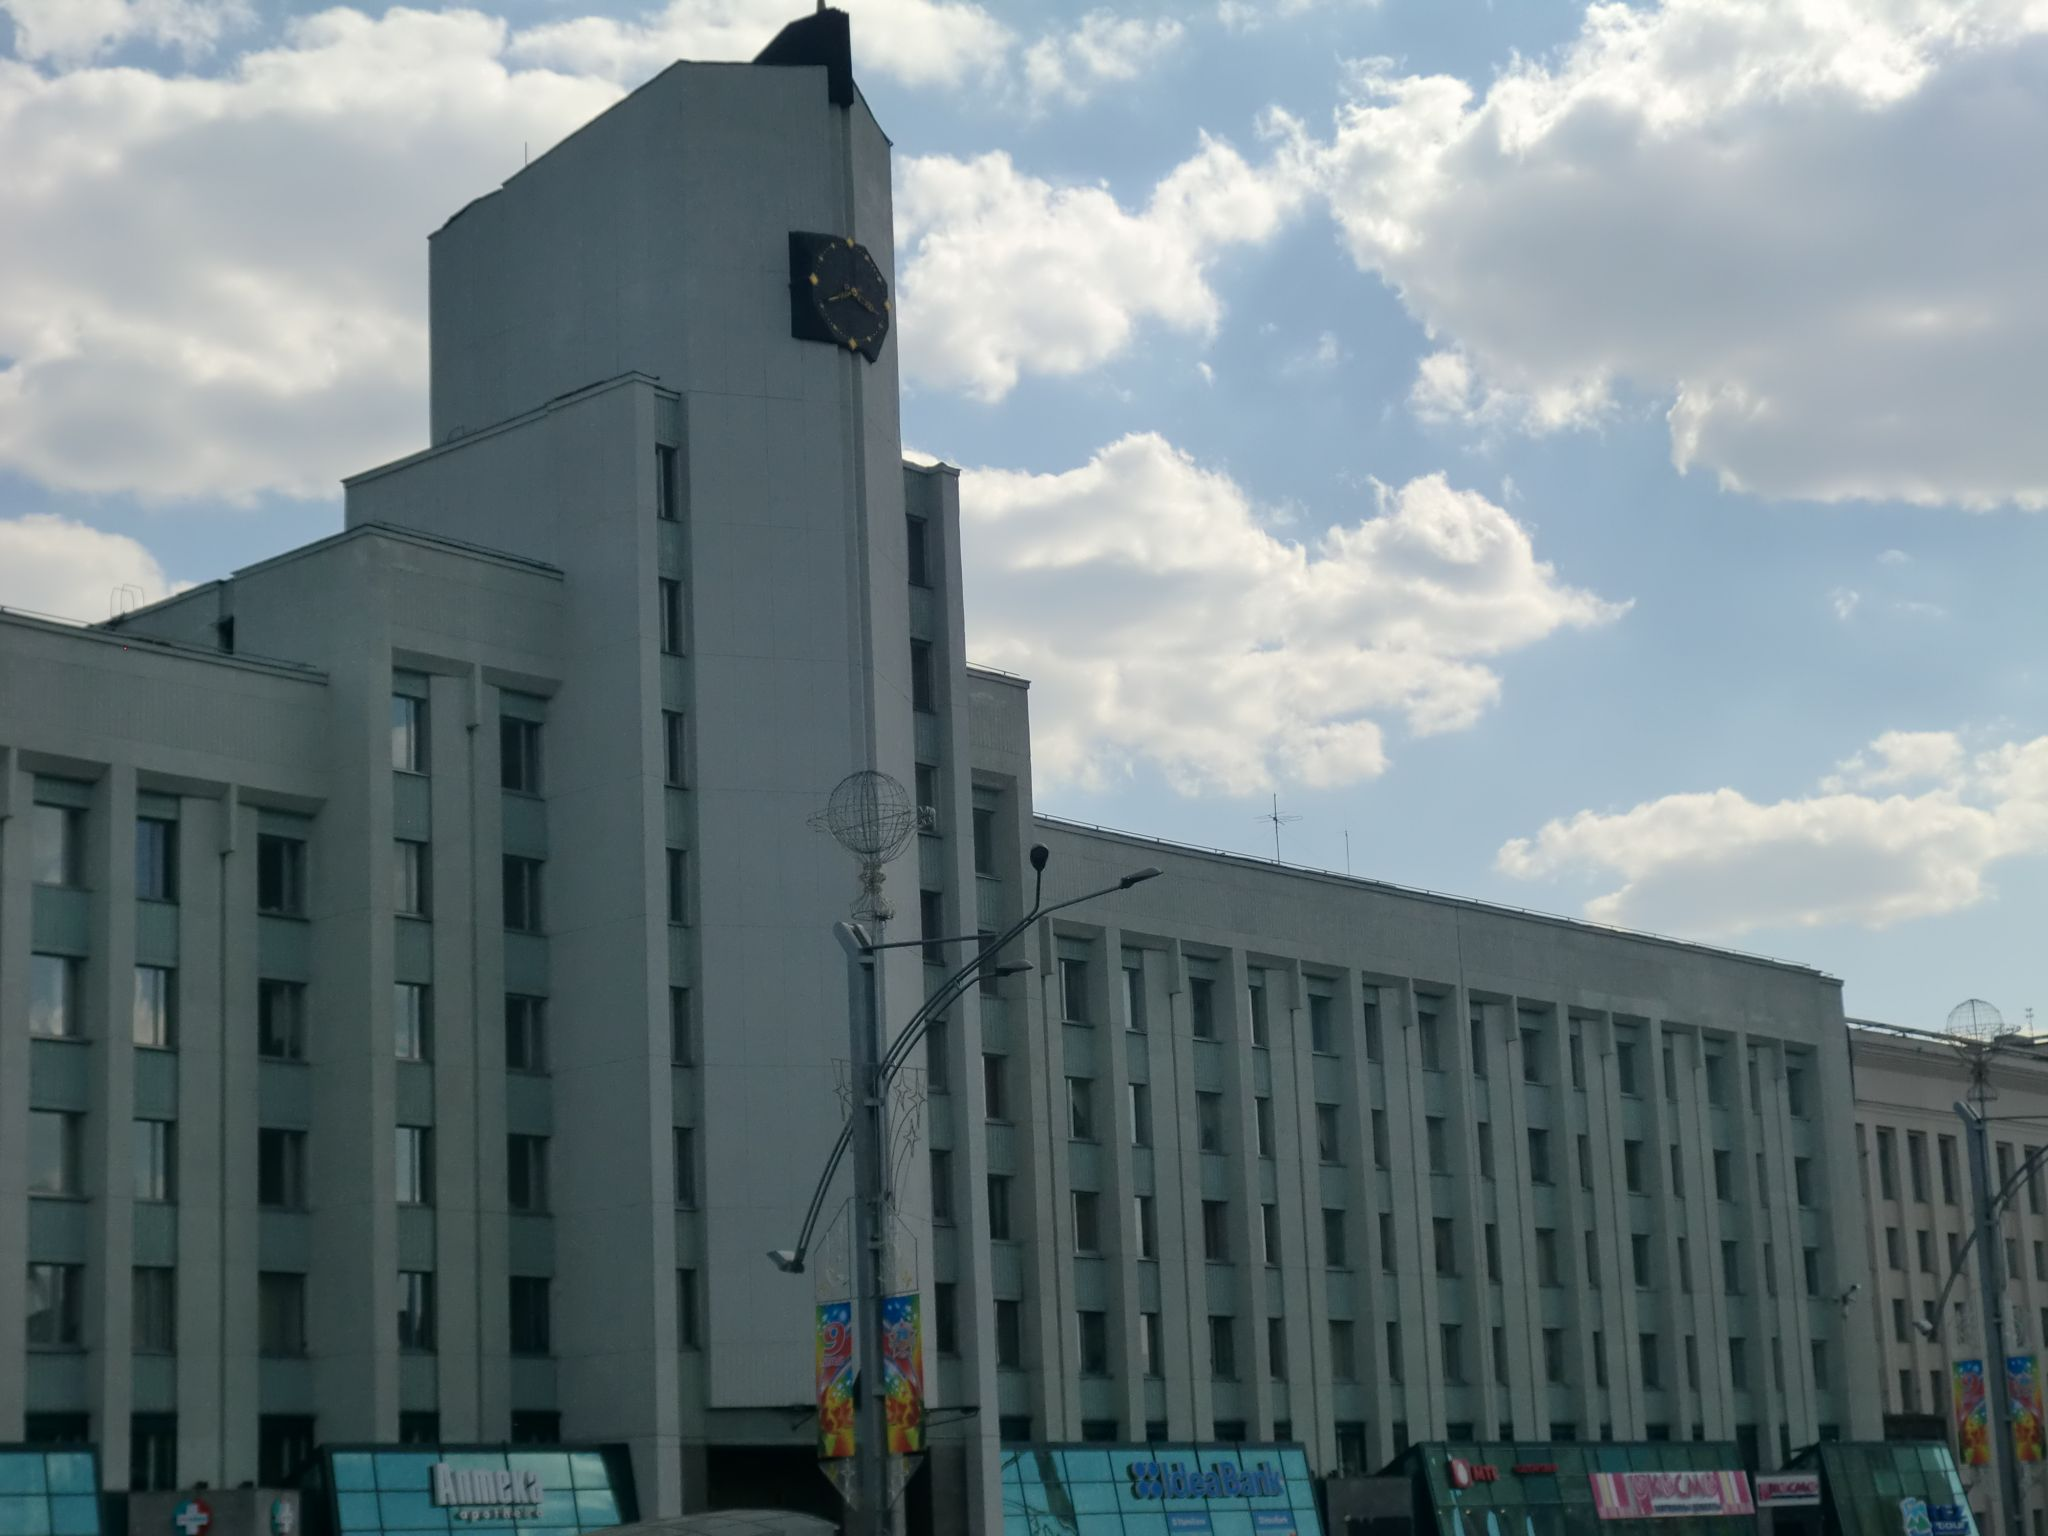 Minsk institutions 2 - Minsk, 1 amazing city you have to see